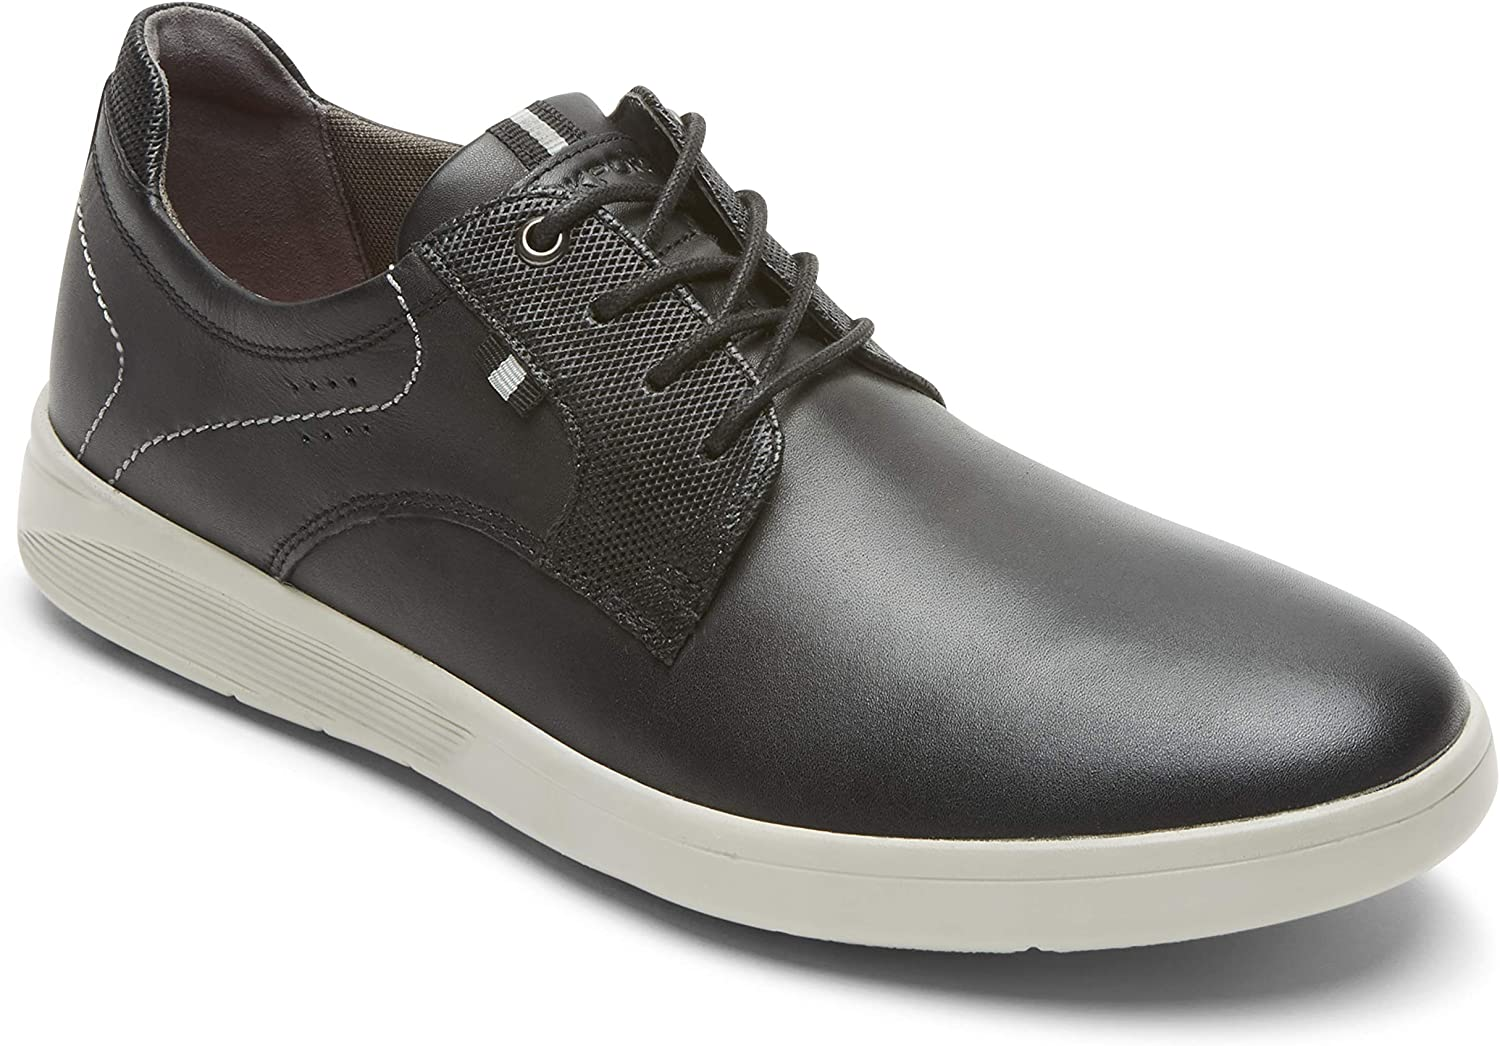 Rockport Men's Caldwell Ox Low Max 57% OFF price Plaintoe Sneaker